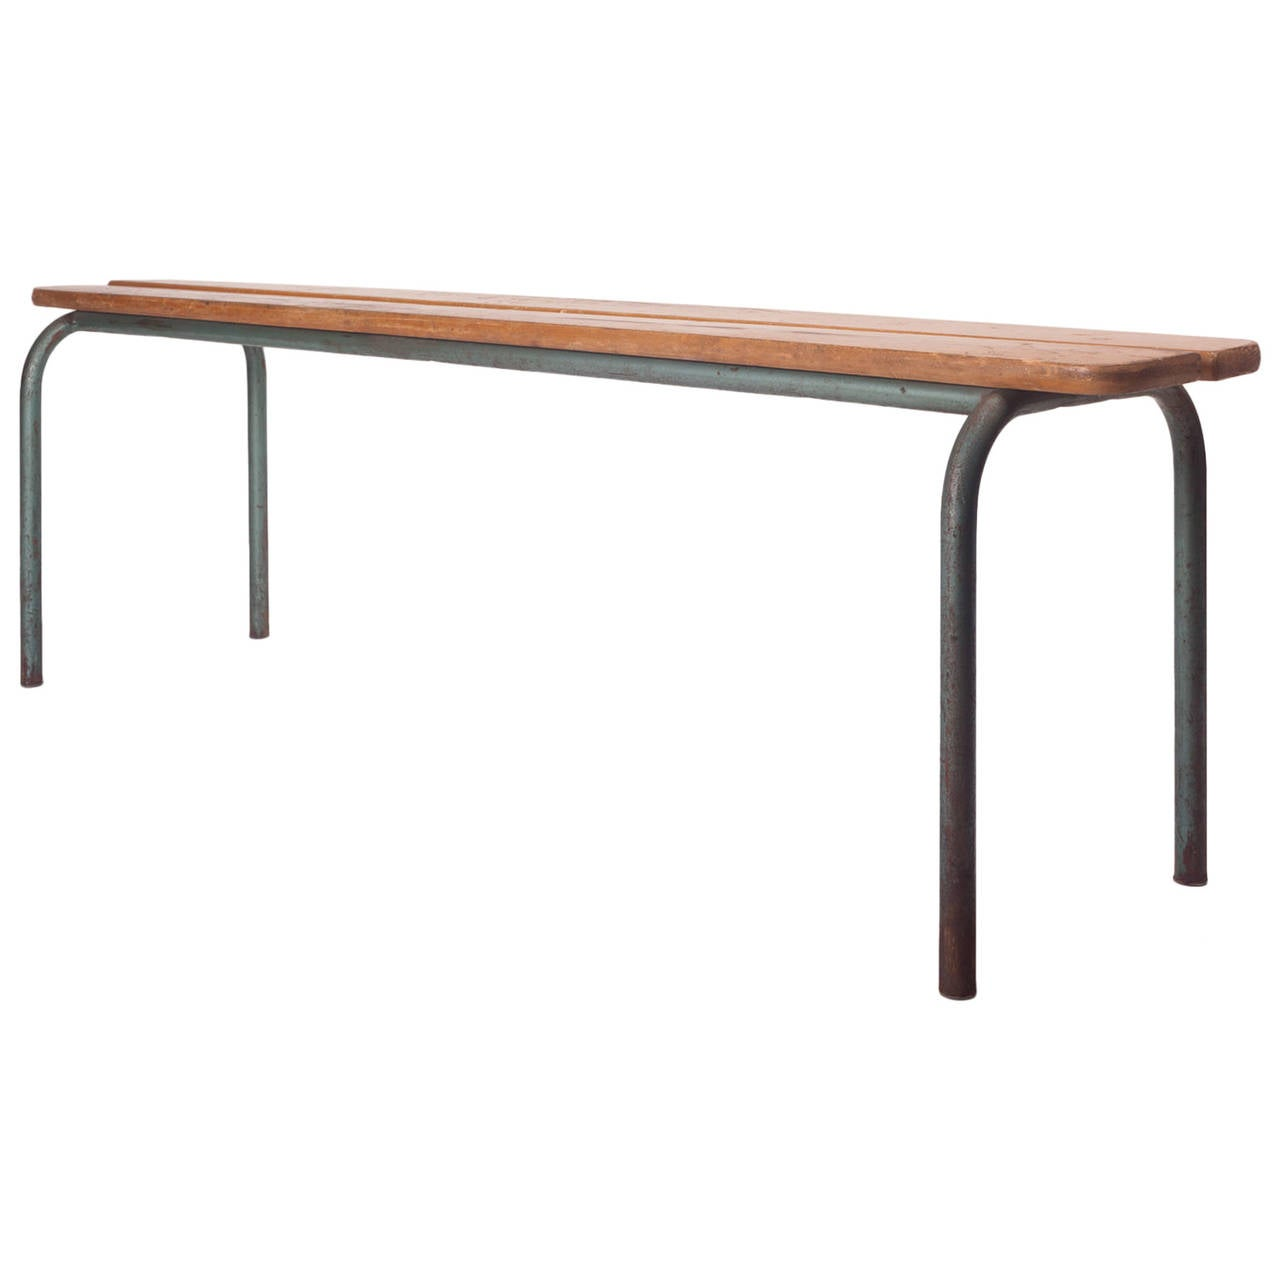 French Industrial Bench In The Manner Of Jean Prouve Wood And Metal 1940s At 1stdibs